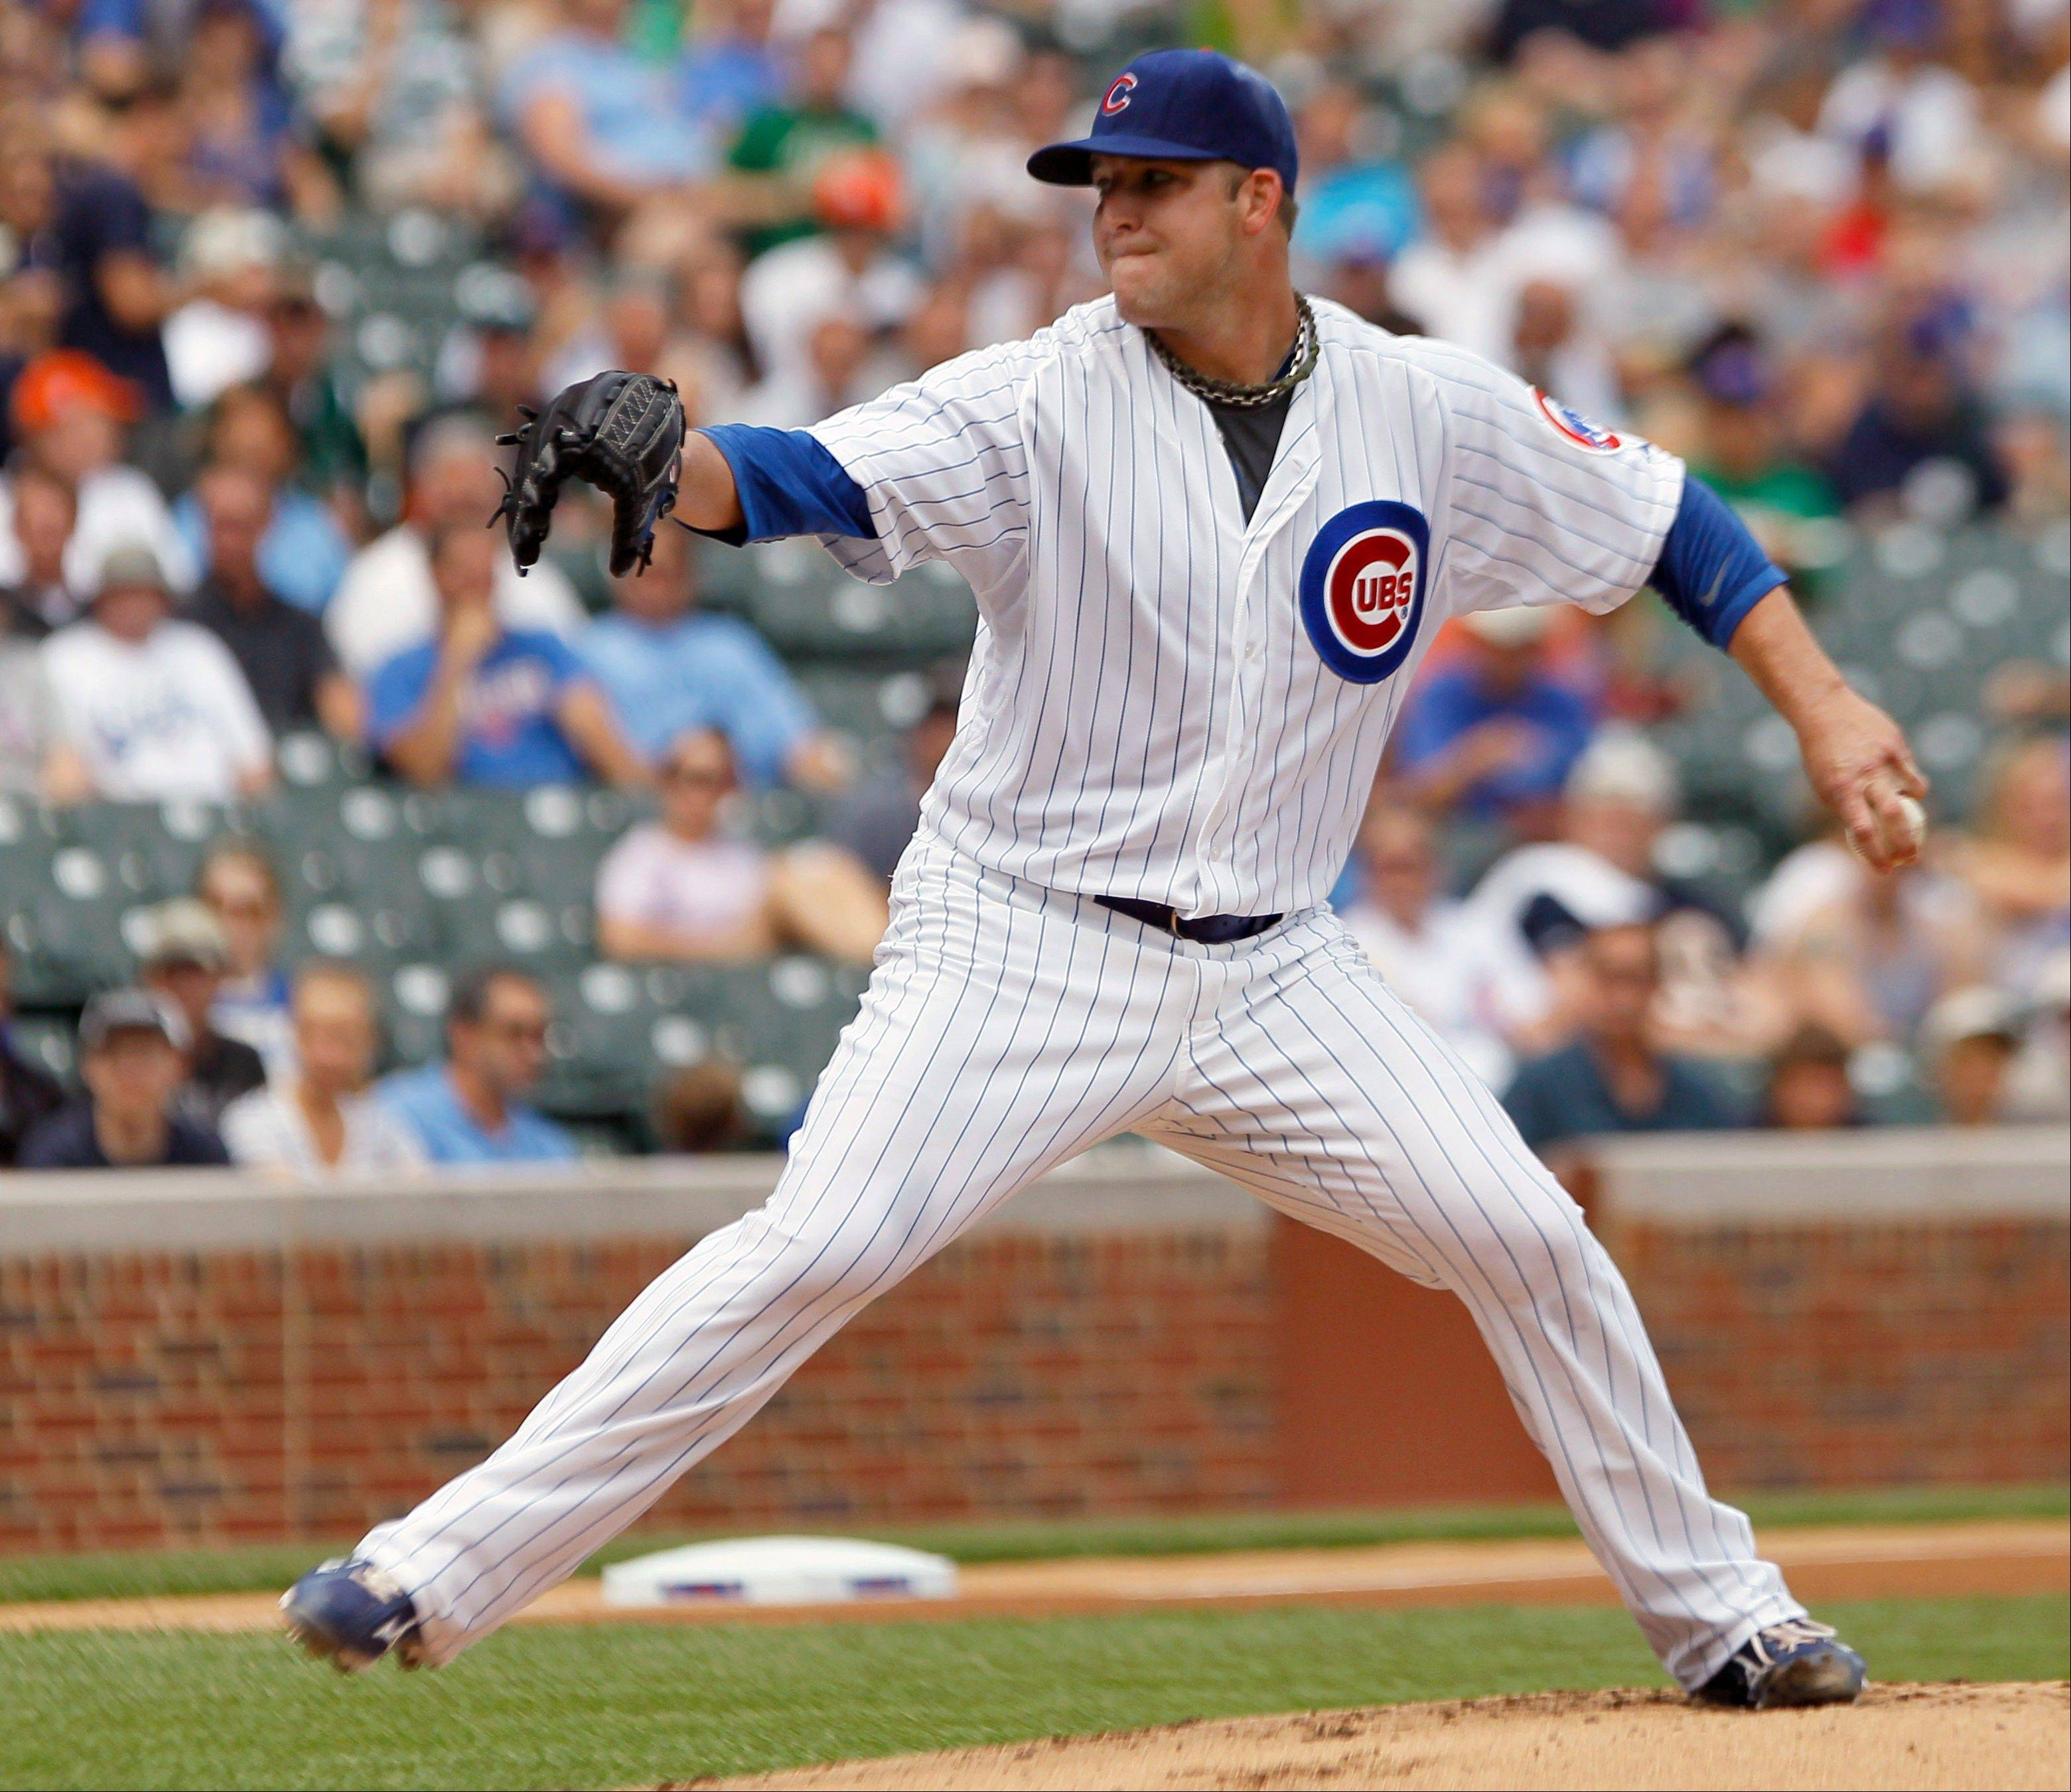 In a crisply paced game that took 2 hours and 18 minutes, Cubs starter Paul Maholm worked 8 innings, giving up 5 hits and 1 run. He's now the winningest Cubs pitcher.